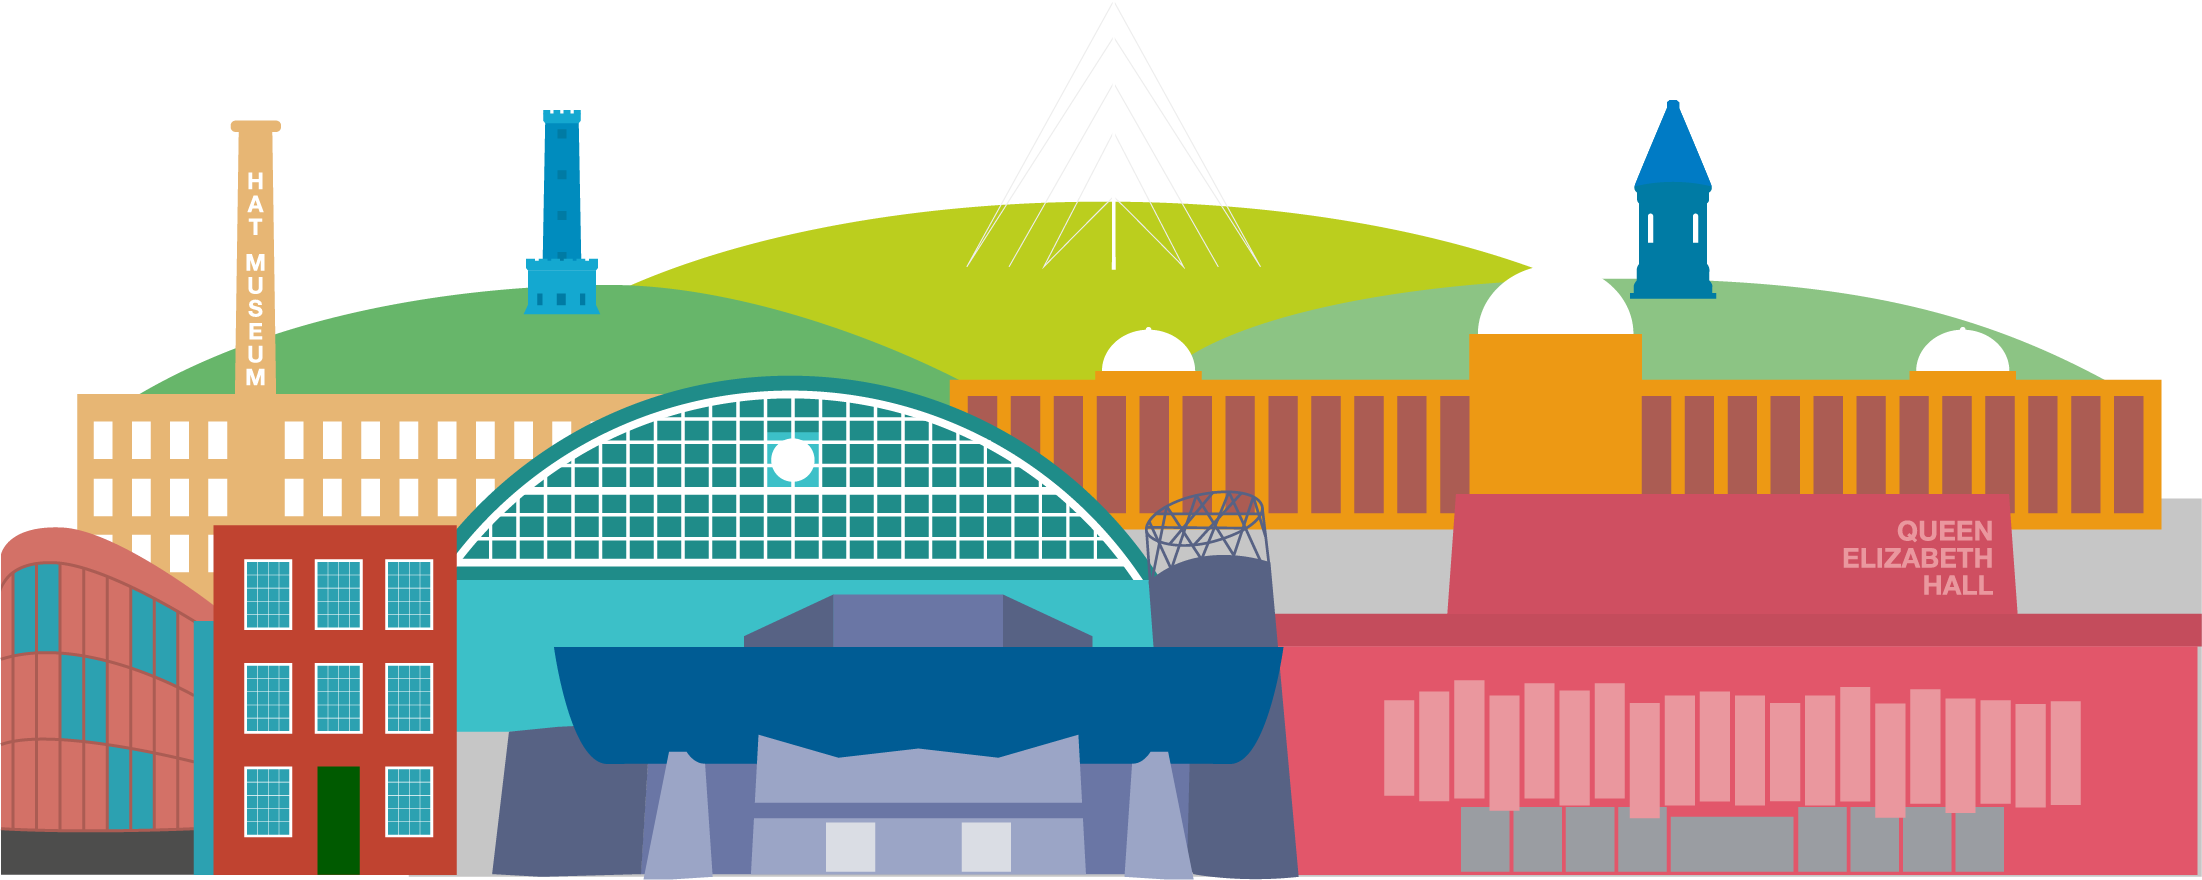 cartoon image of Greater Manchester buildings